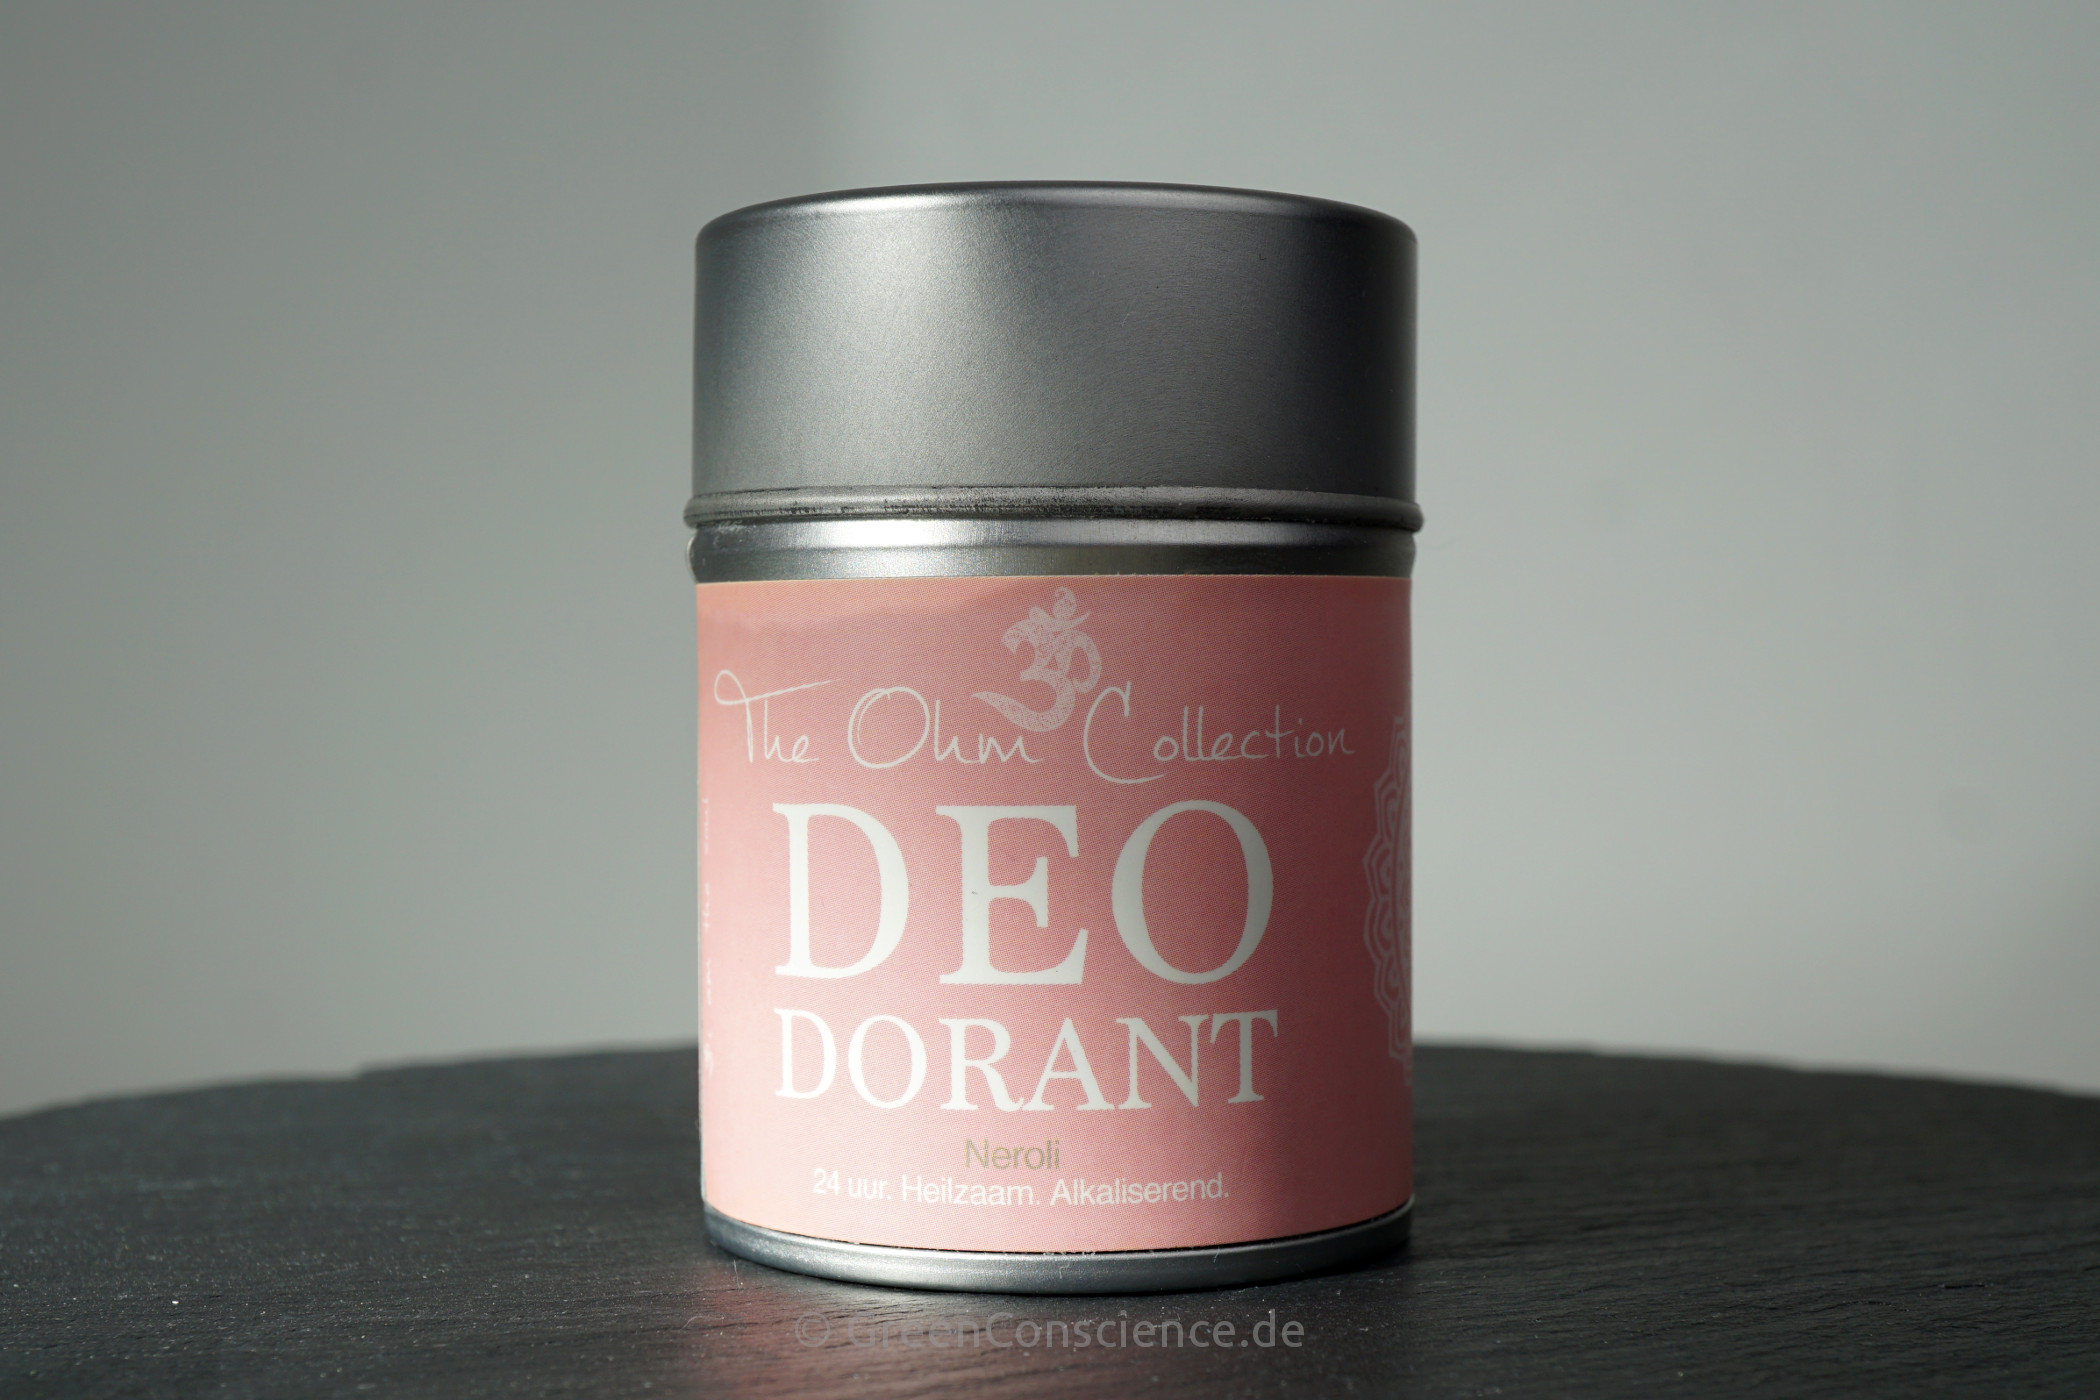 The Ohm Collection Deo Dorant Powder Neroli | Vorderseite der Metalldose